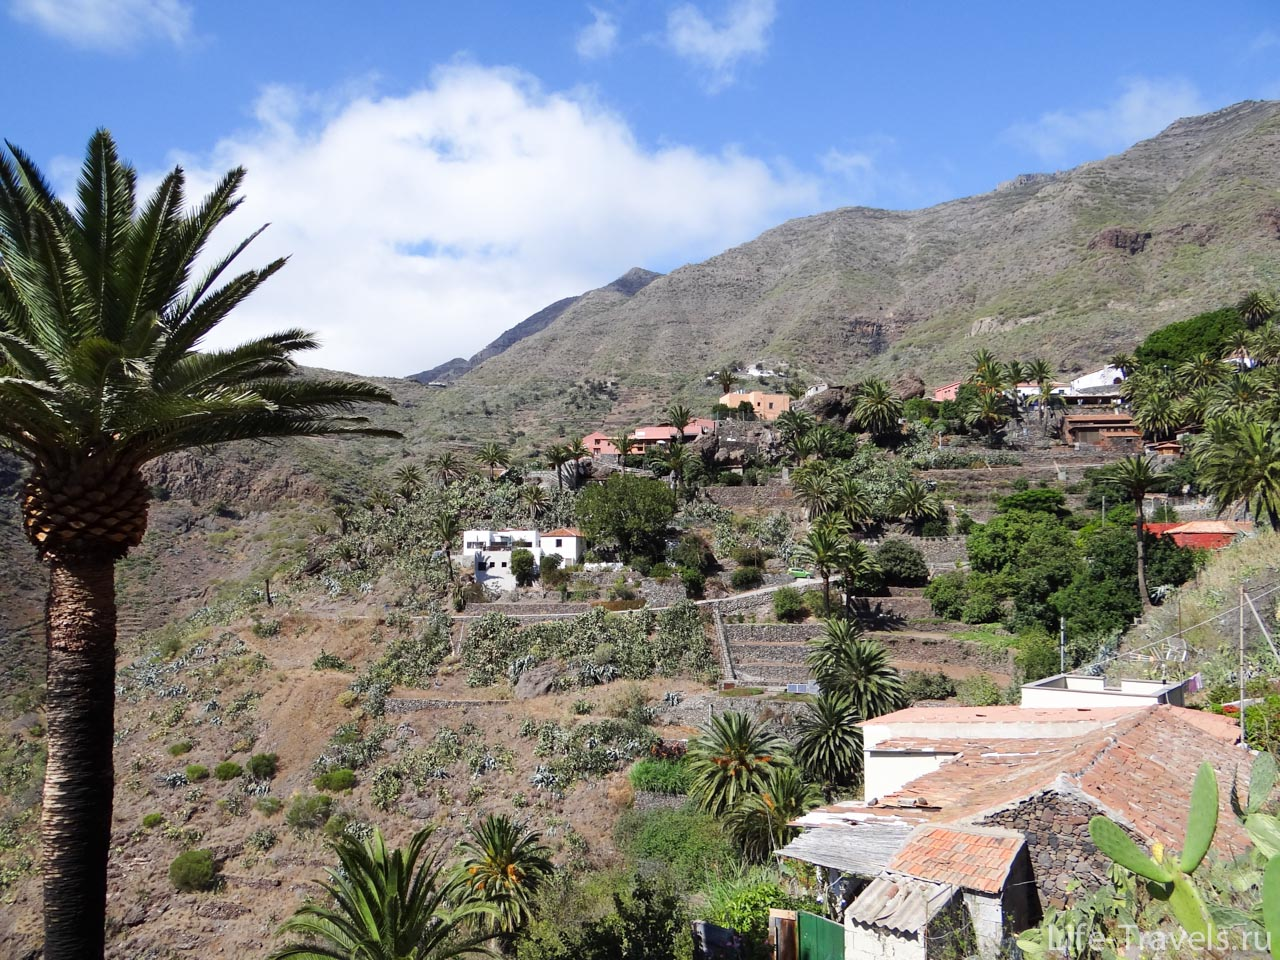 Houses in the village Masca